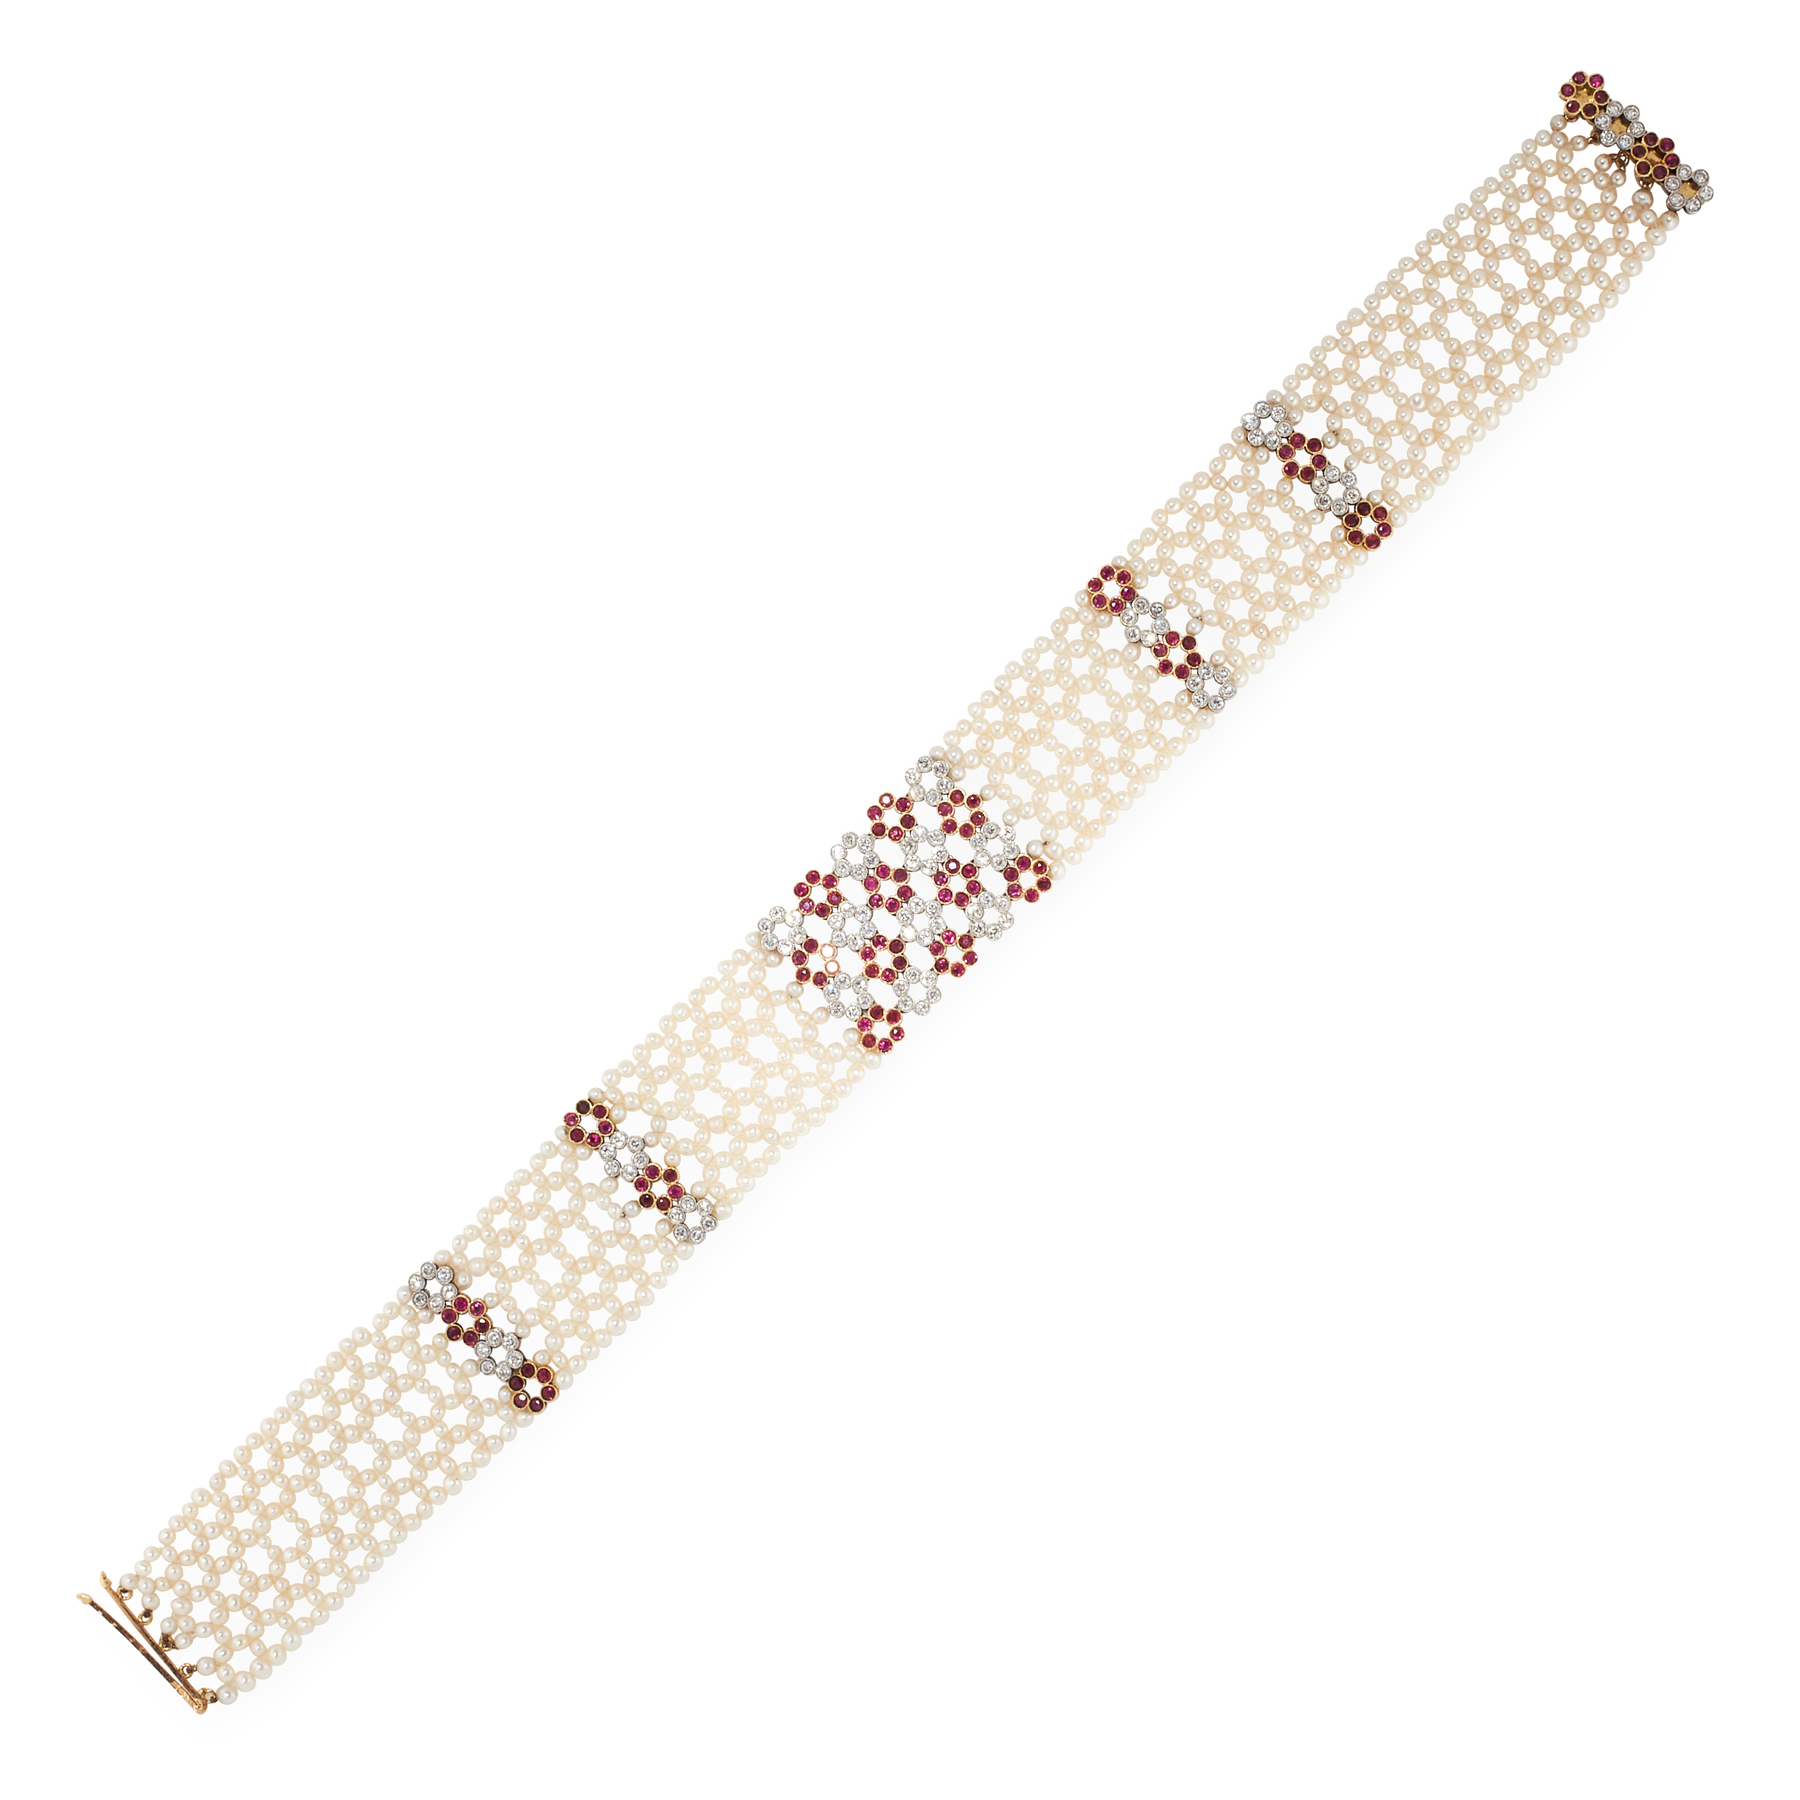 A PEARL, RUBY AND DIAMOND CHOKER NECKLACE in 18ct yellow gold and platinum, comprising six rows of